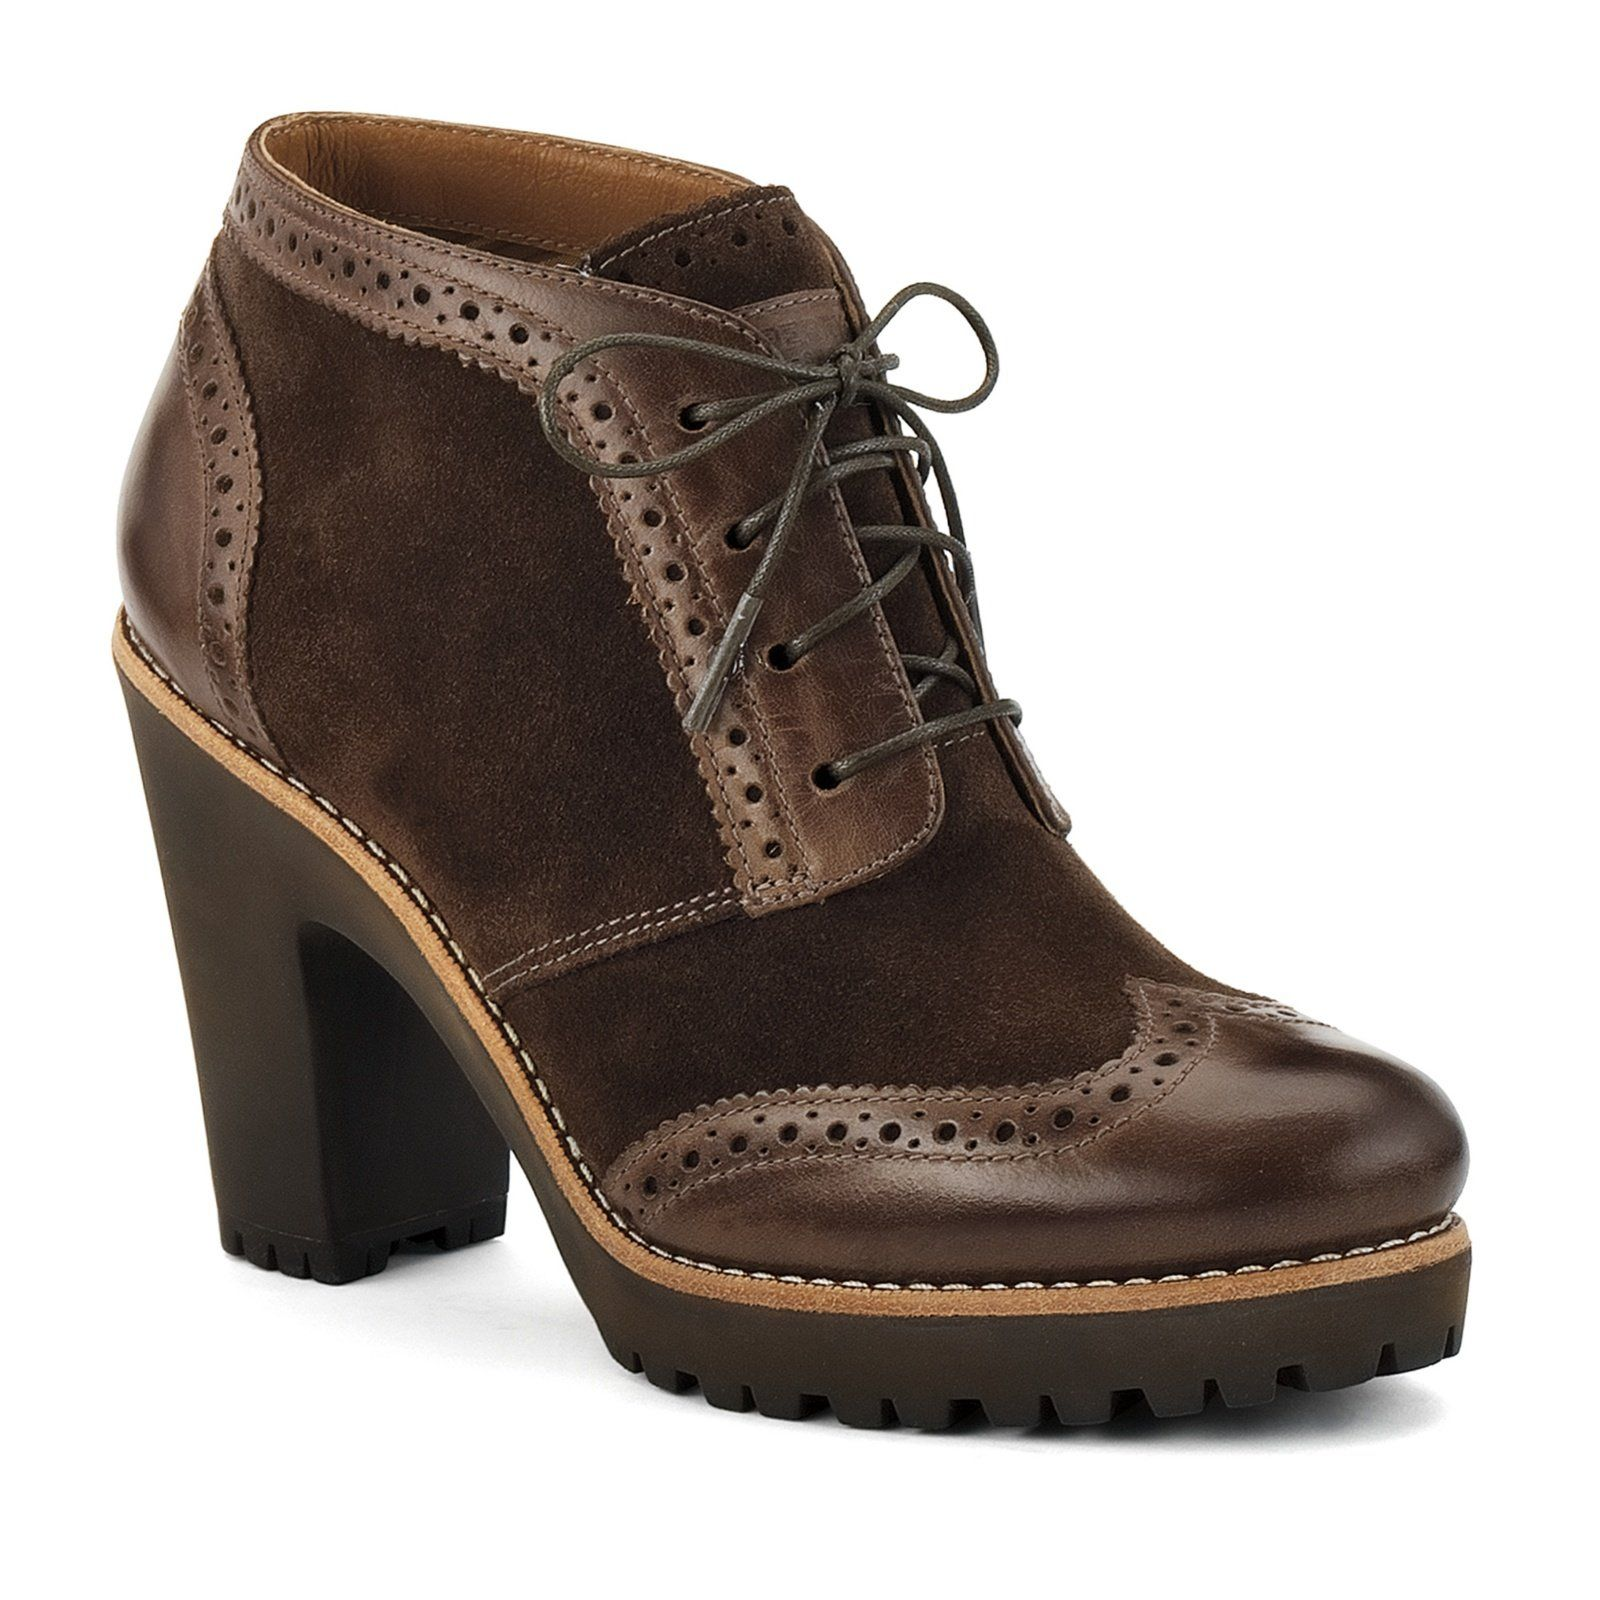 Sperry Top-Sider Women's Emory Boot,Brown,8 ...